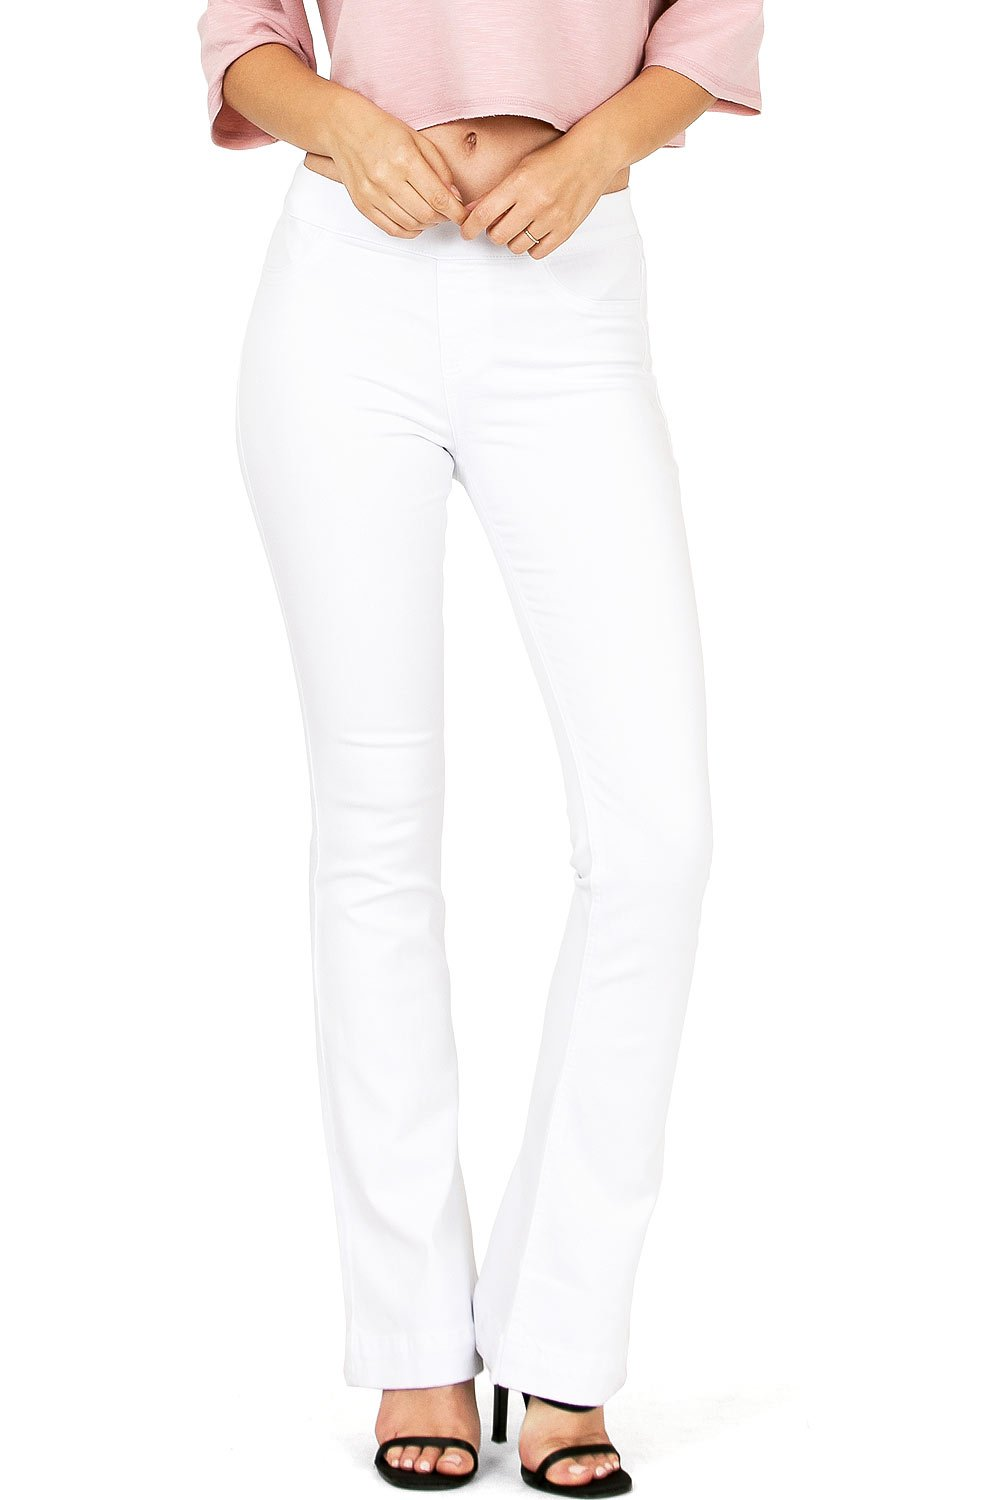 Cello Women's Juniors Mid Waist Skinny Fit Bootcut Pants (S, White)